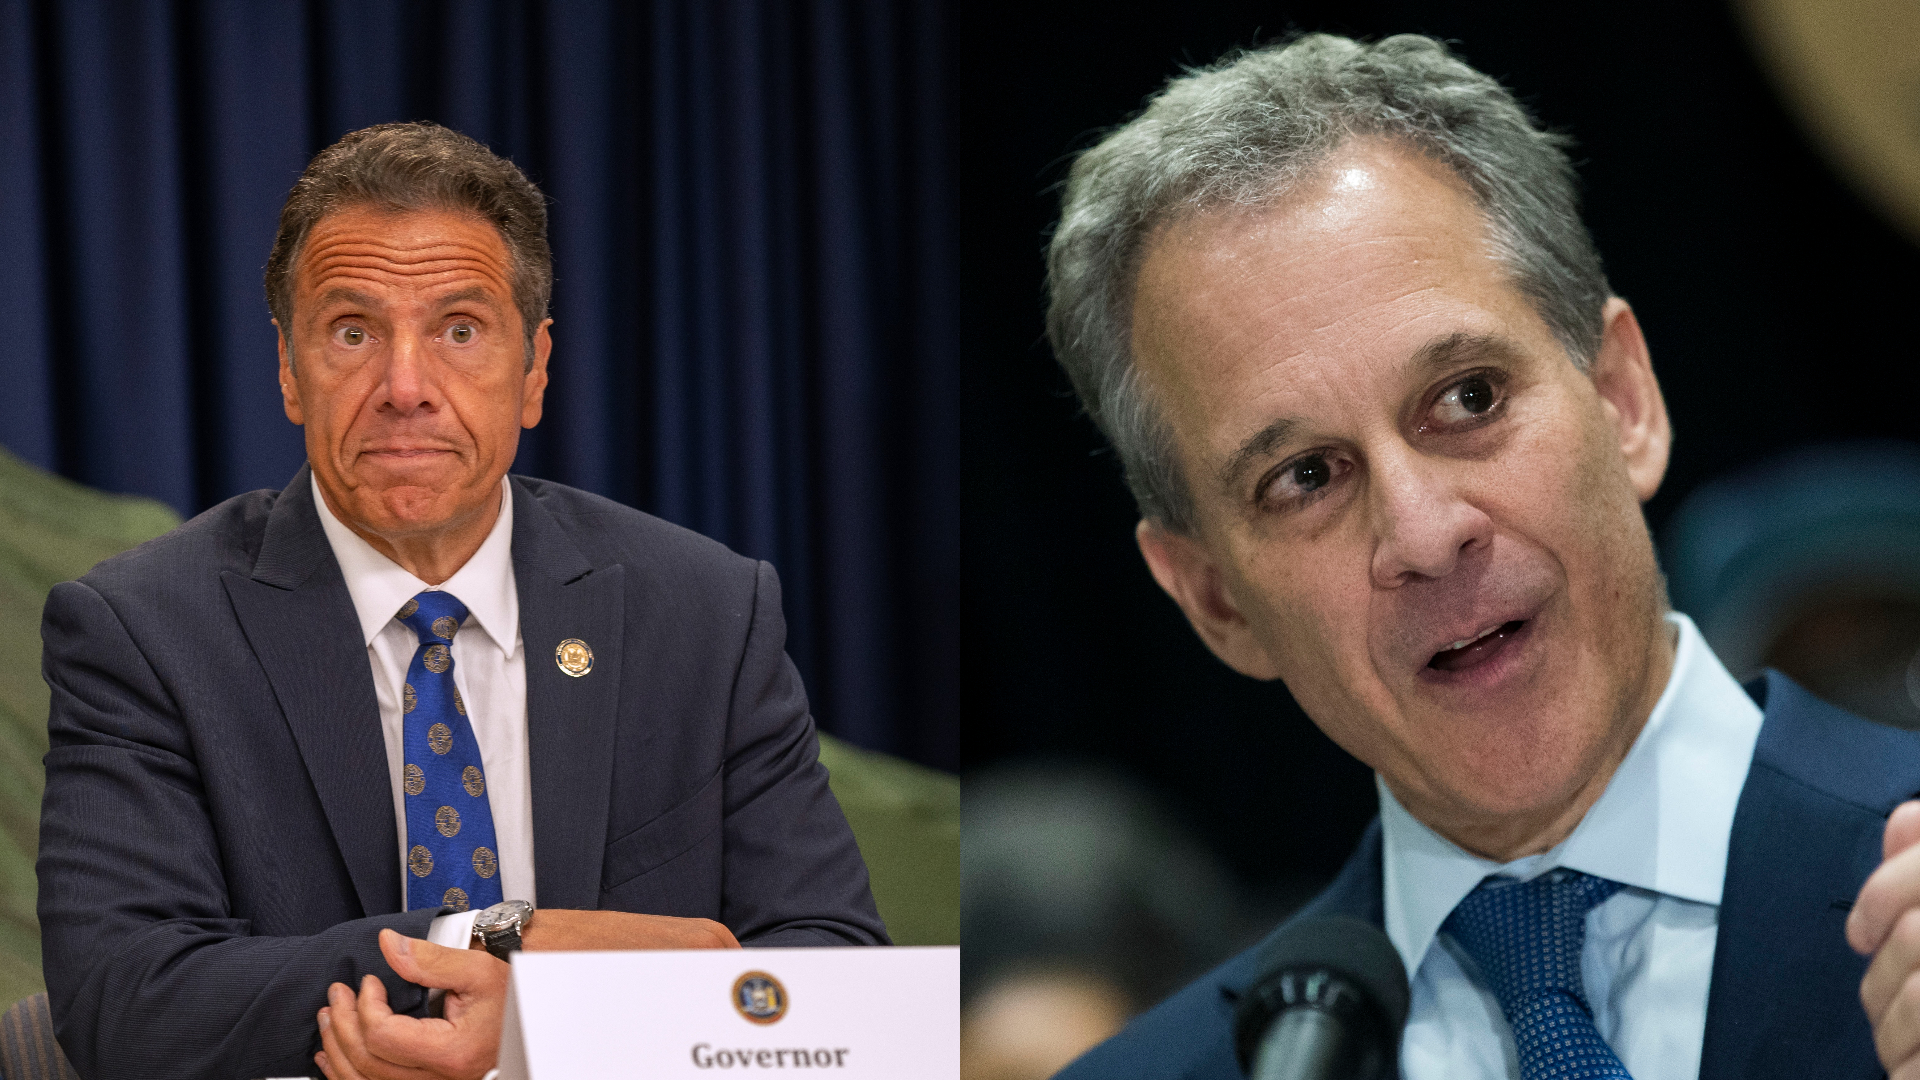 Schumer, Gillibrand call on NY Gov. Cuomo to resign